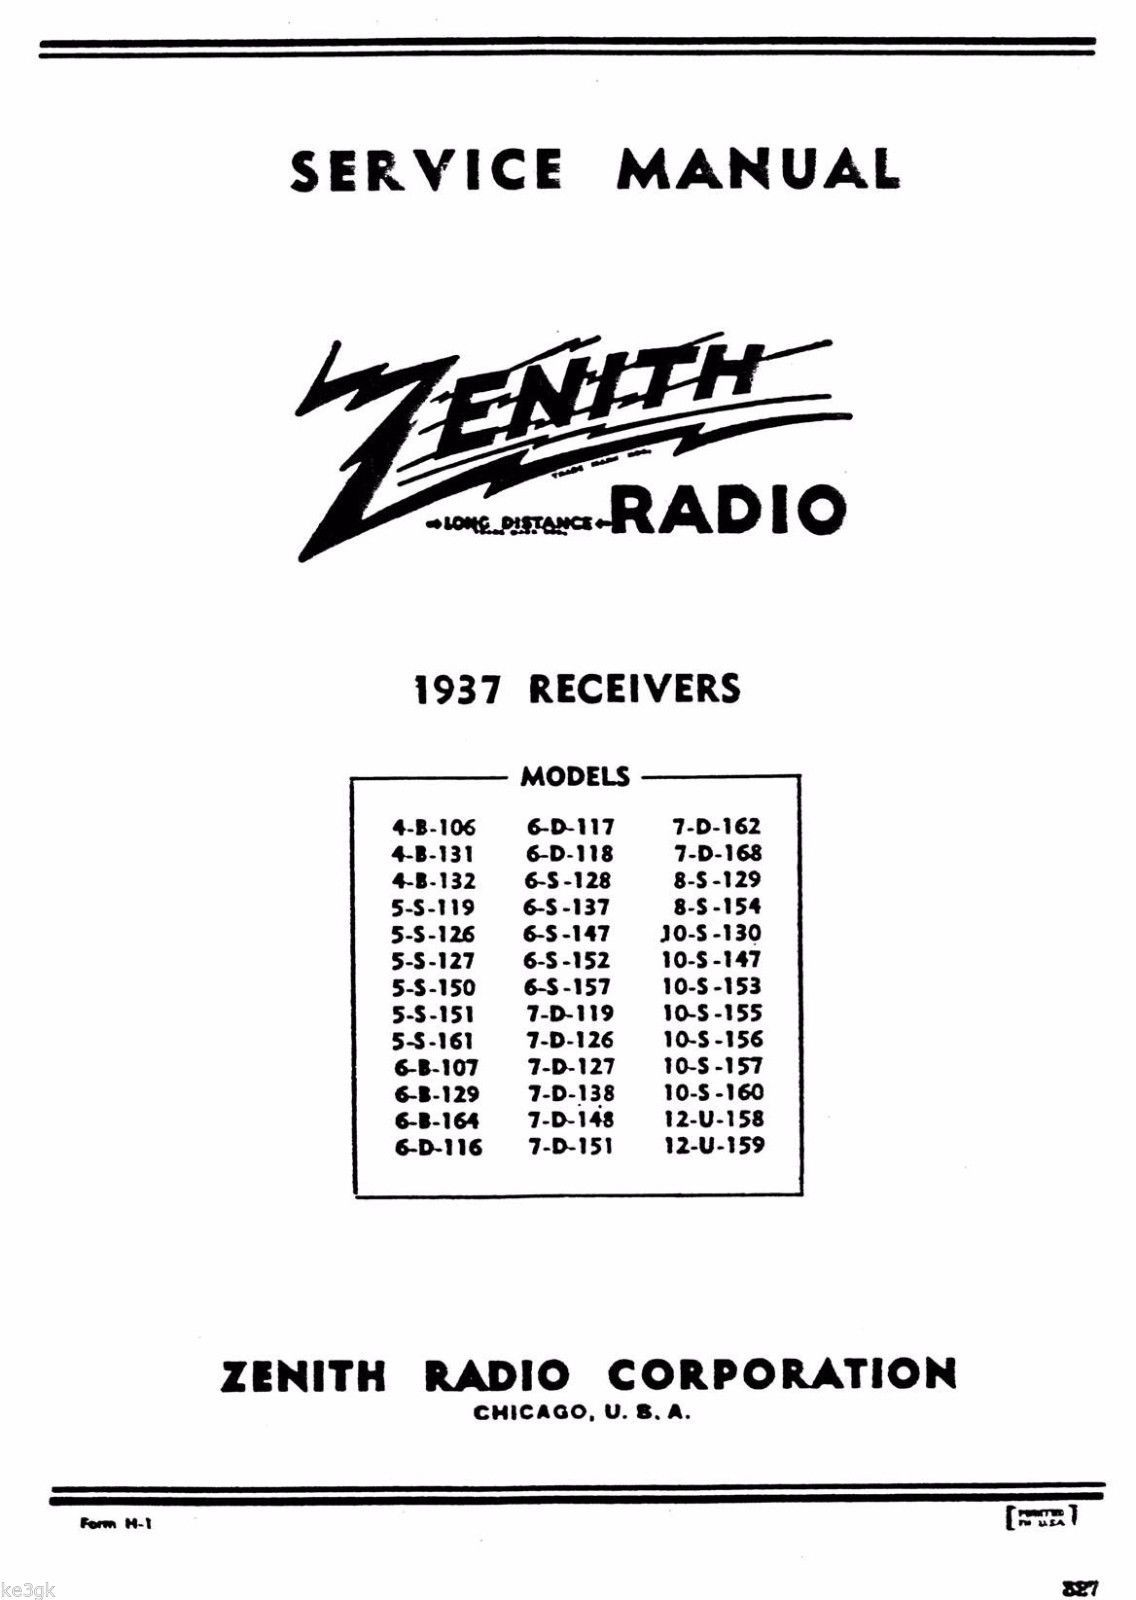 1937 Zenith Receivers Service Manual and and 50 similar items